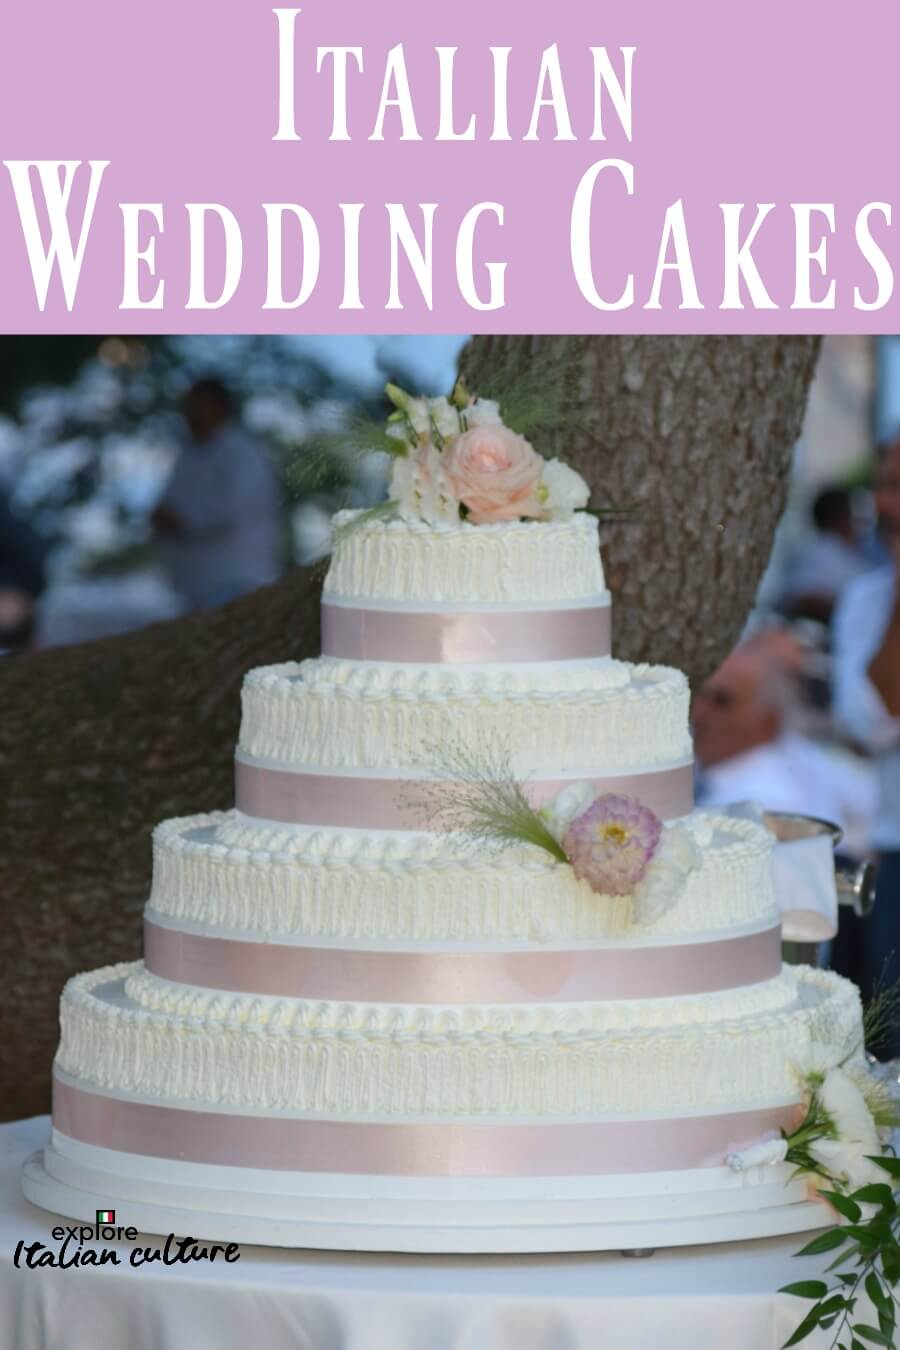 All about Italian wedding cakes - pin for later.